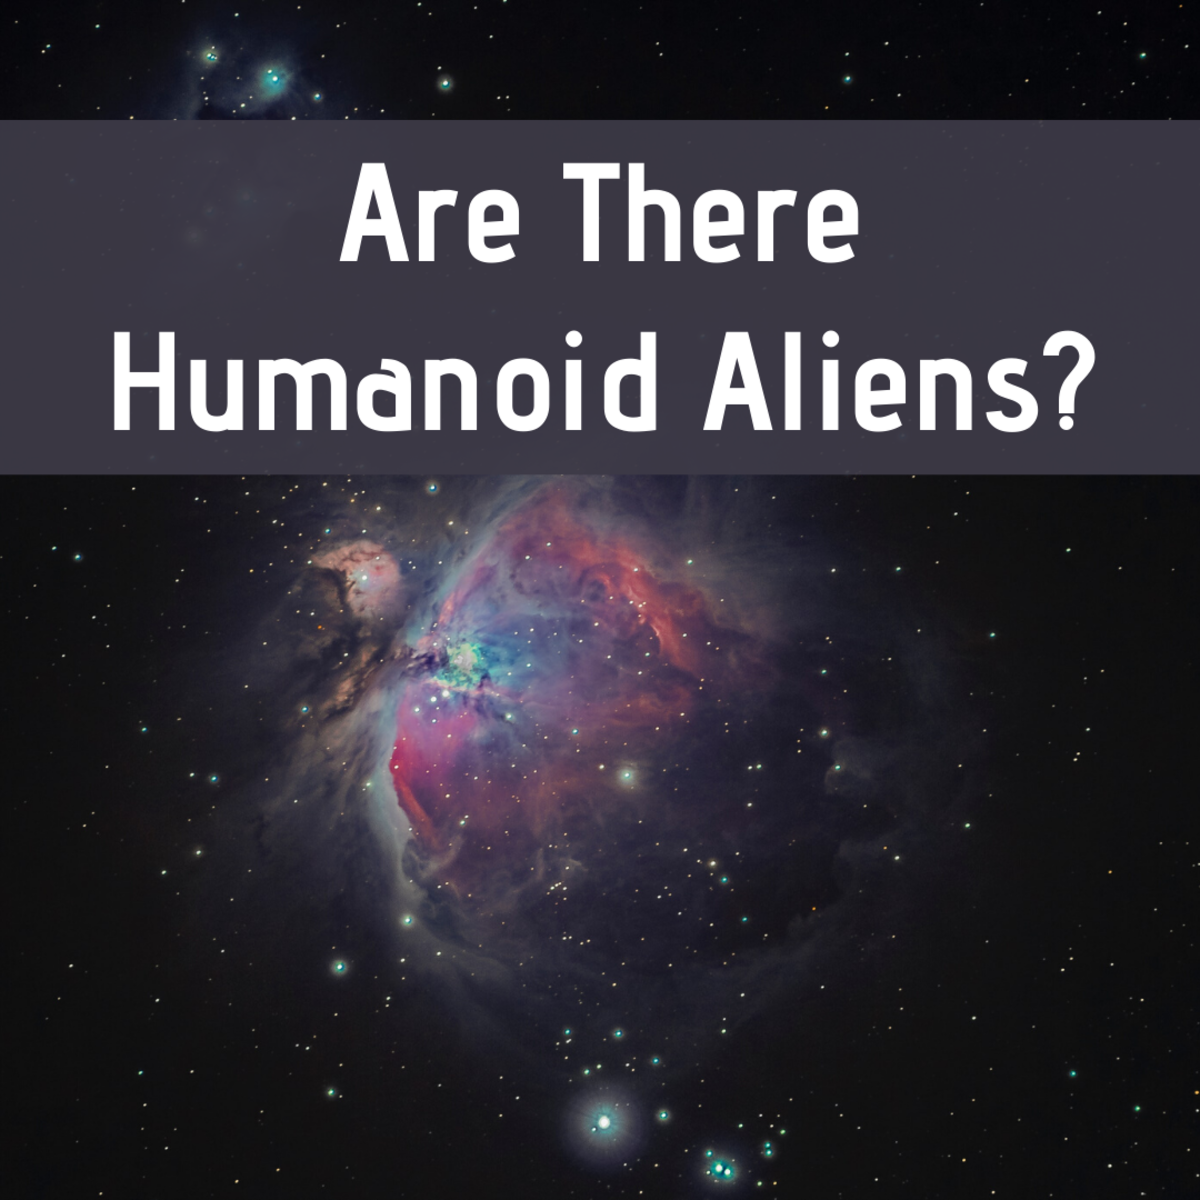 Could Humanoid Aliens Exist?